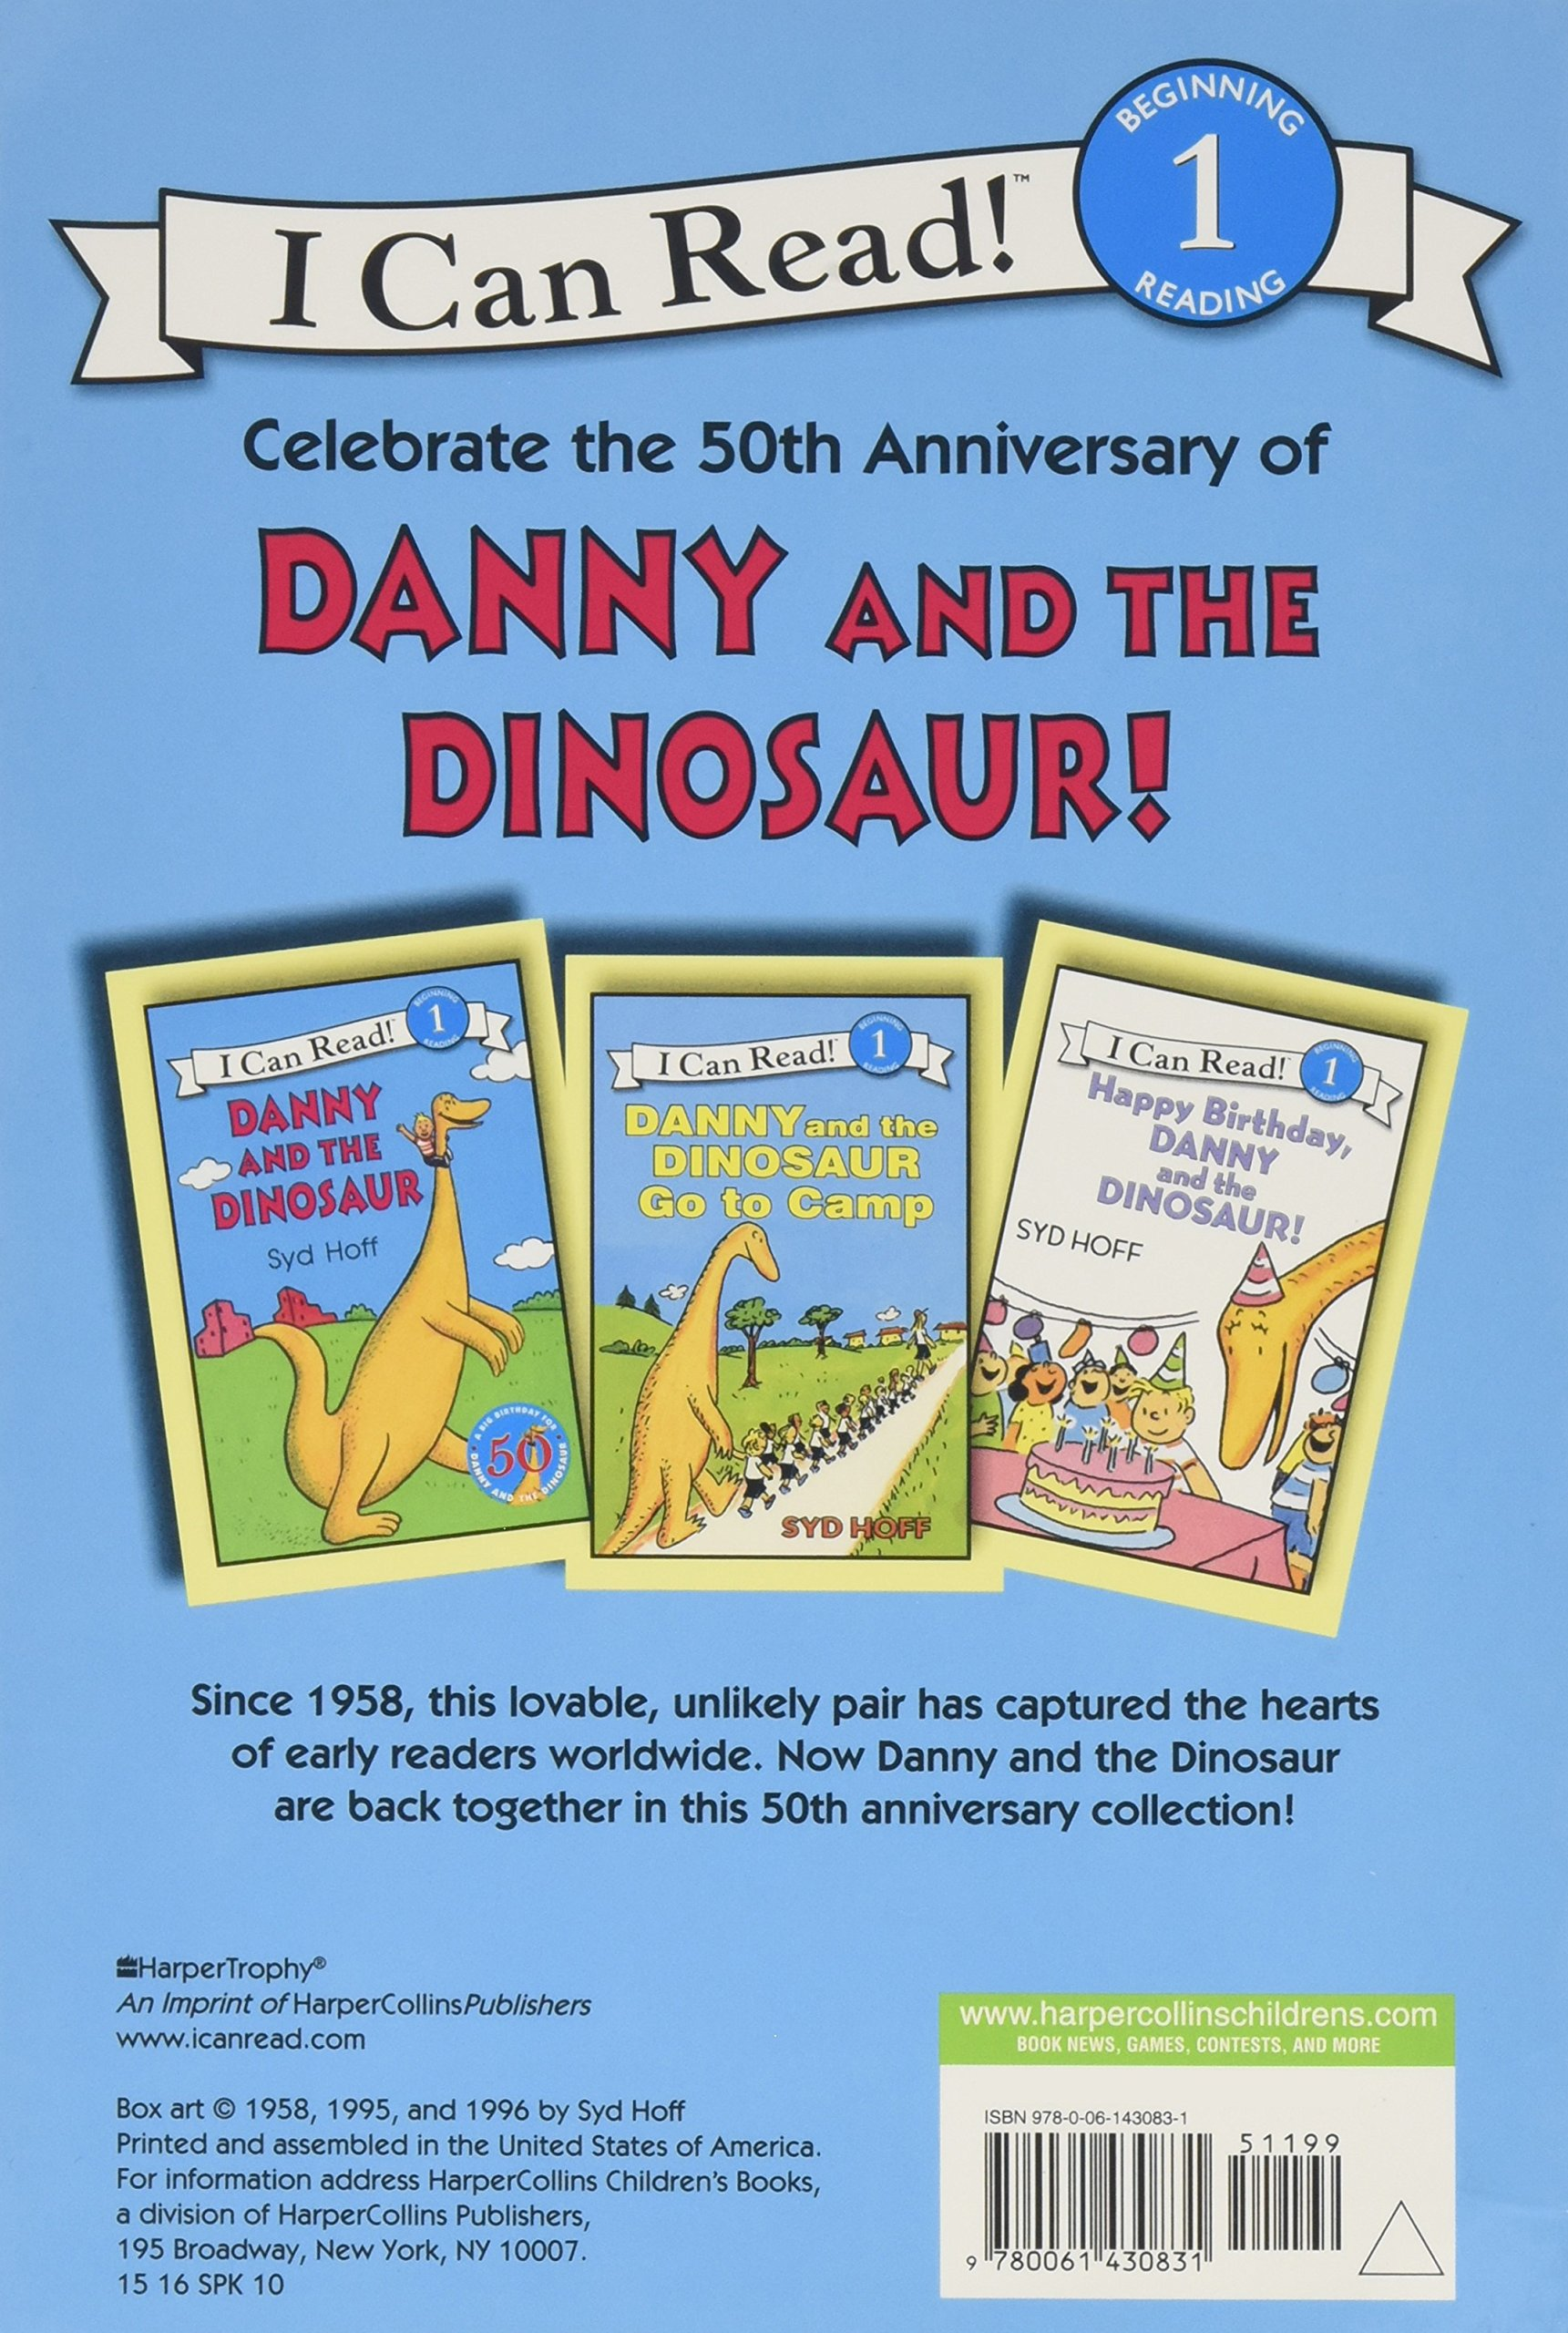 Danny and the Dinosaur 3-Book Box Set: Danny and the Dinosaur; Happy Birthday, Danny and the Dinosaur!; Danny and the Dinosaur Go to Camp (I Can Read Level 1) by Harper Collins